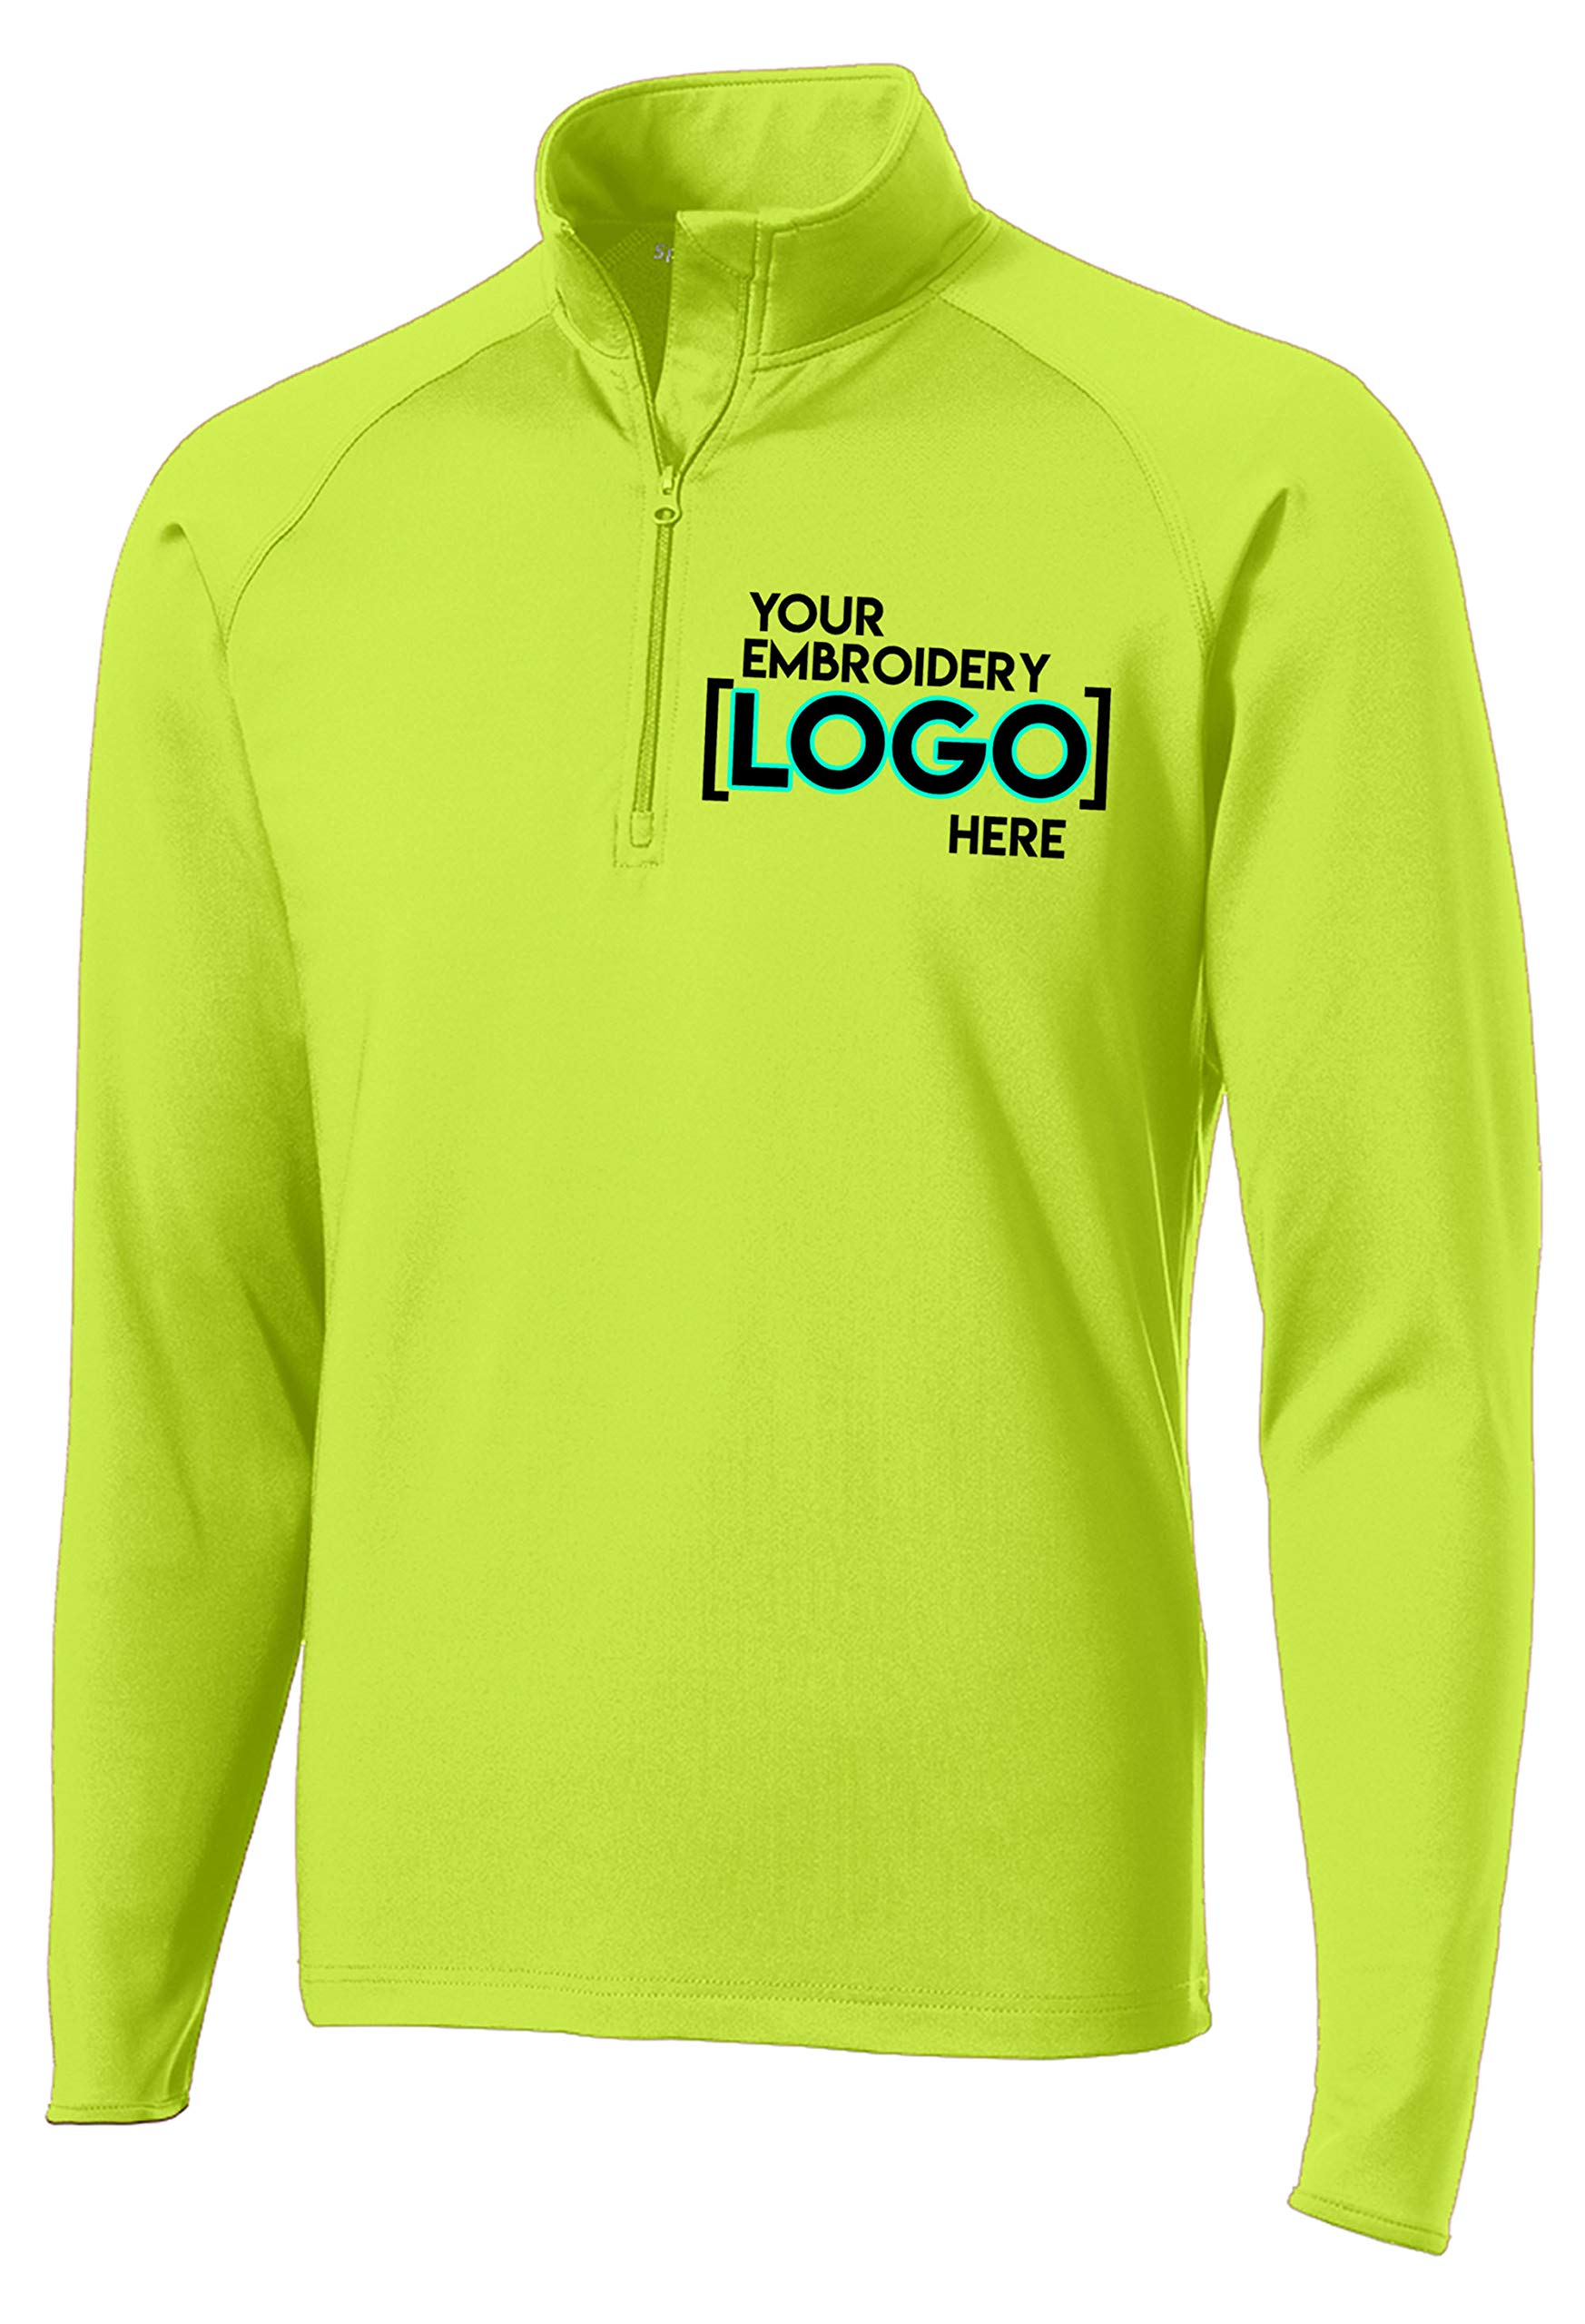 Custom Embroidered Jackets for Men - Lightweight Embroidery Half Zip Pullover by Tee Miracle